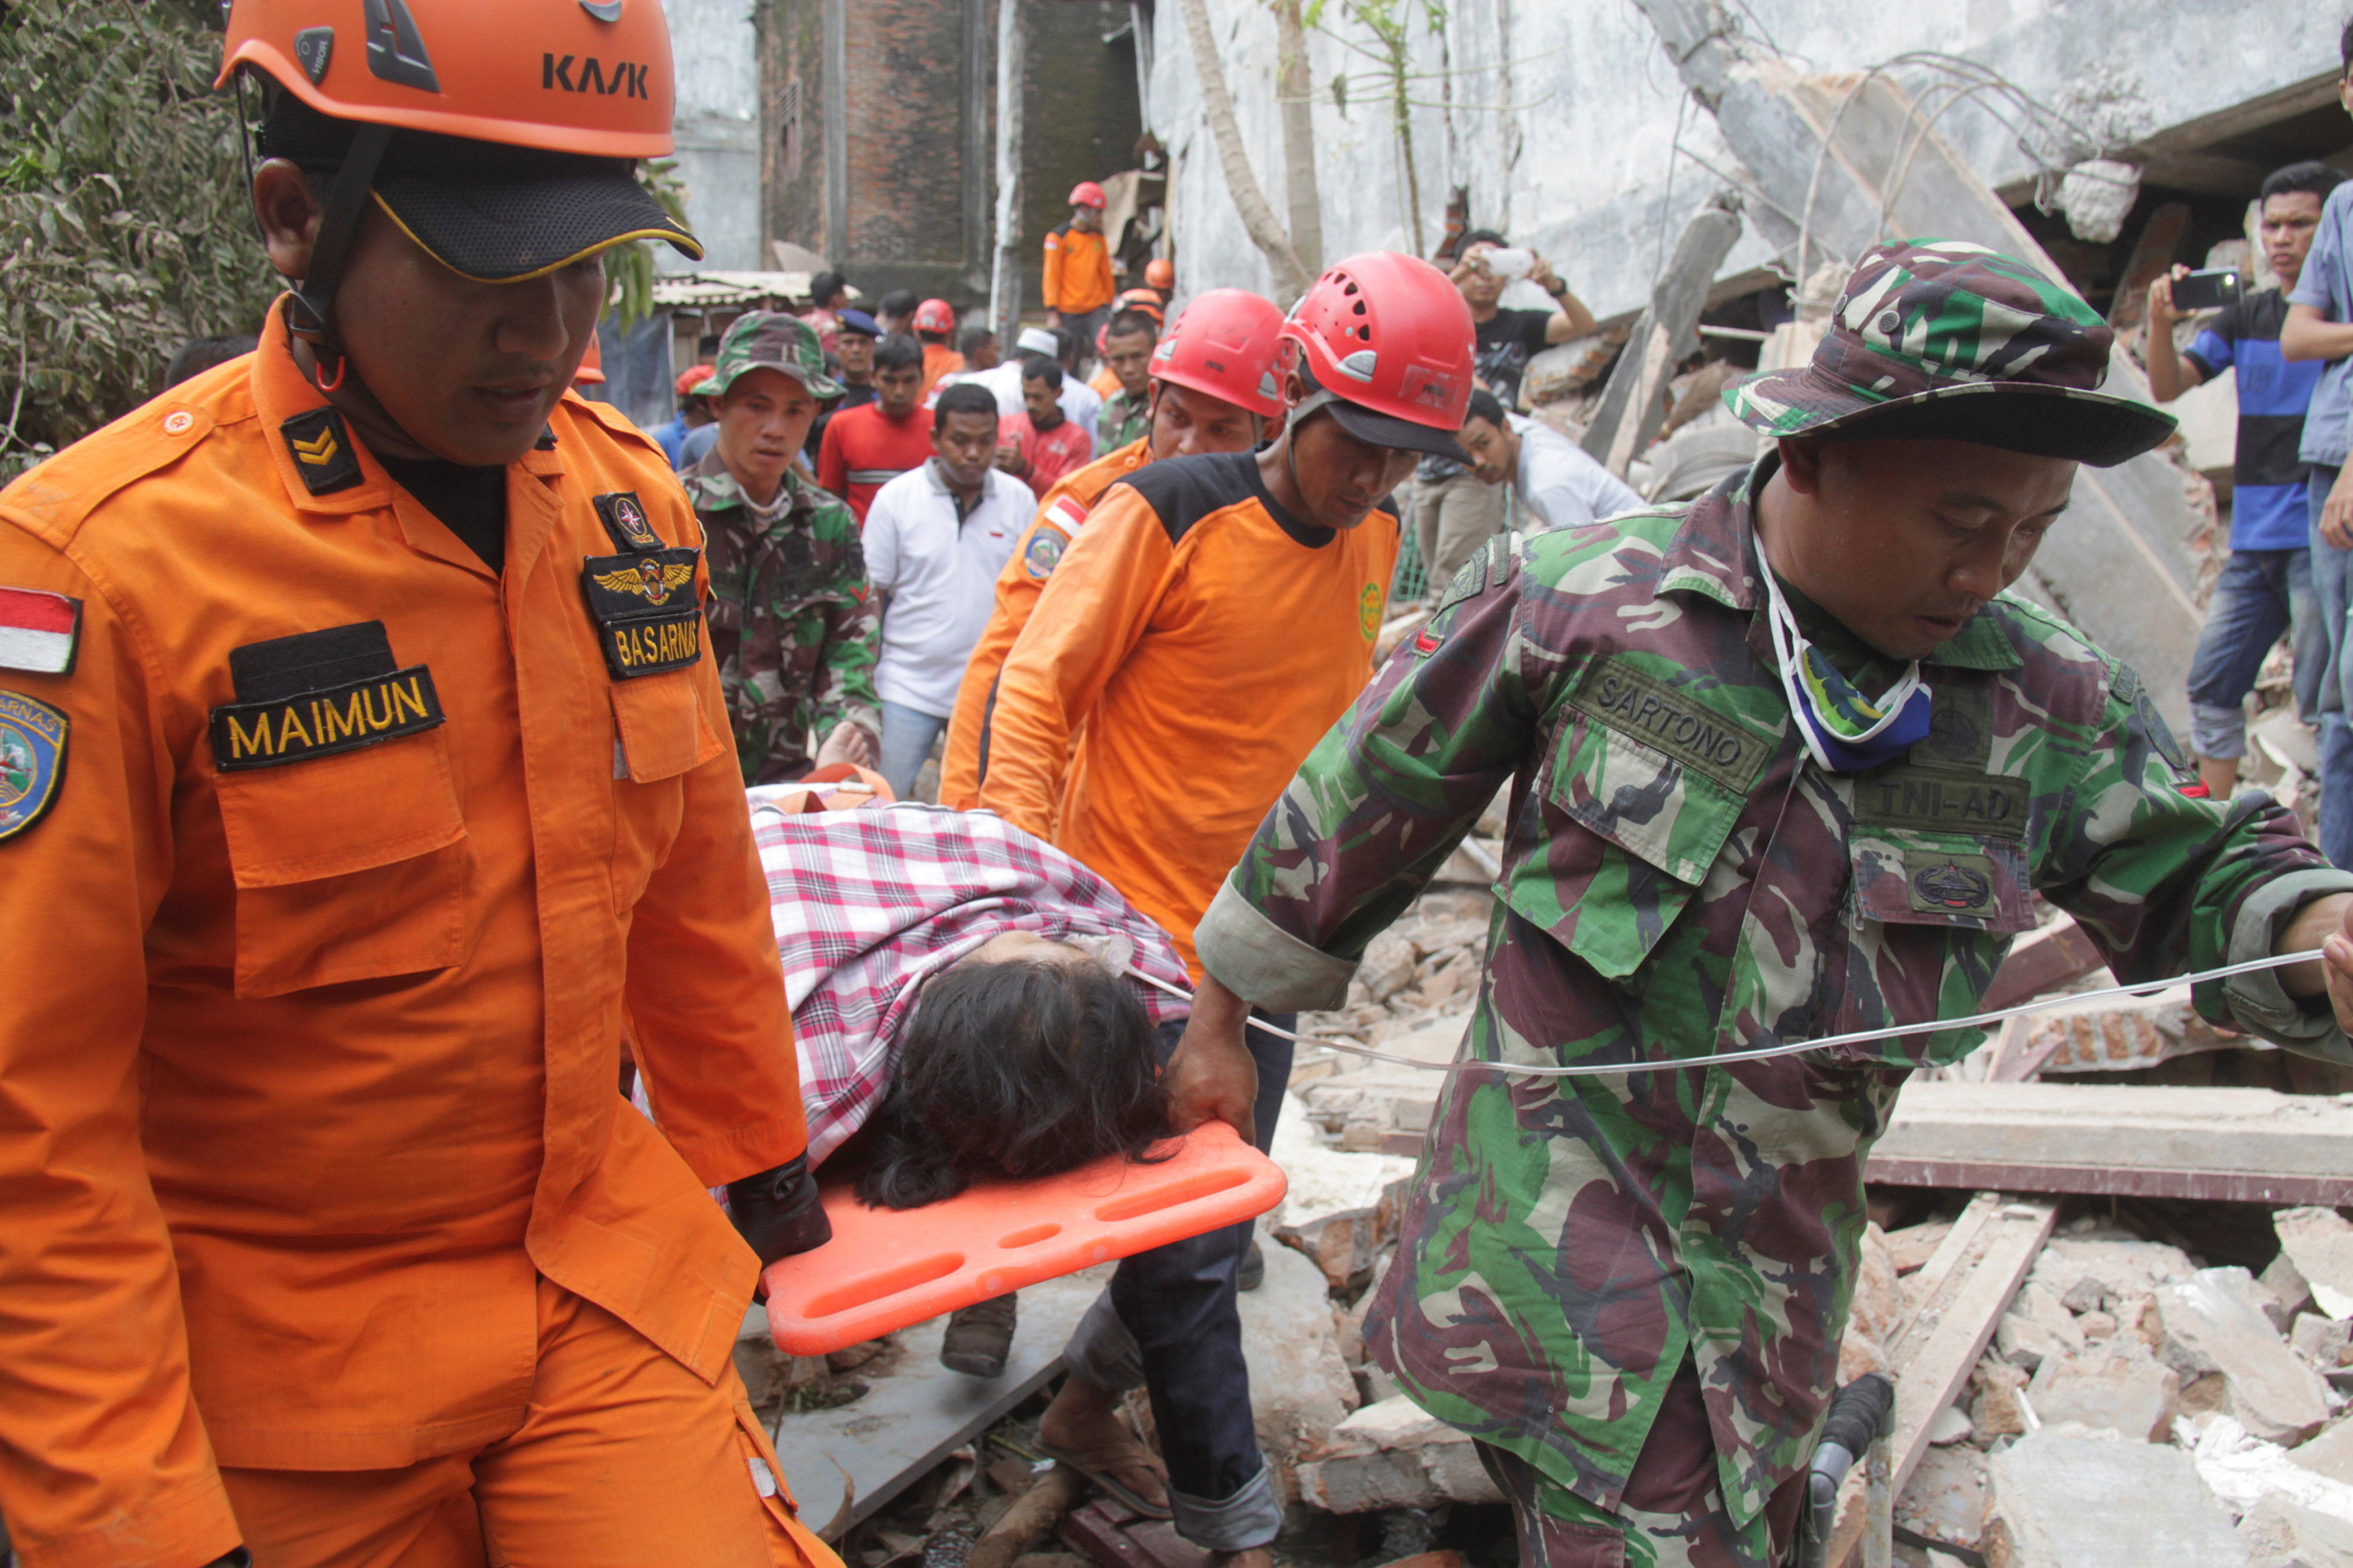 Indonesian rescue workers carry a survivor from a fallen building after an earthquake in Ulee Glee, Pidie Jaya, in the northern province of Aceh, Indonesia December 7, 2016. Antara Foto/Ampelsa/via REUTERS ATTENTION EDITORS - THIS IMAGE WAS PROVIDED BY A THIRD PARTY. FOR EDITORIAL USE ONLY. MANDATORY CREDIT. INDONESIA OUT.